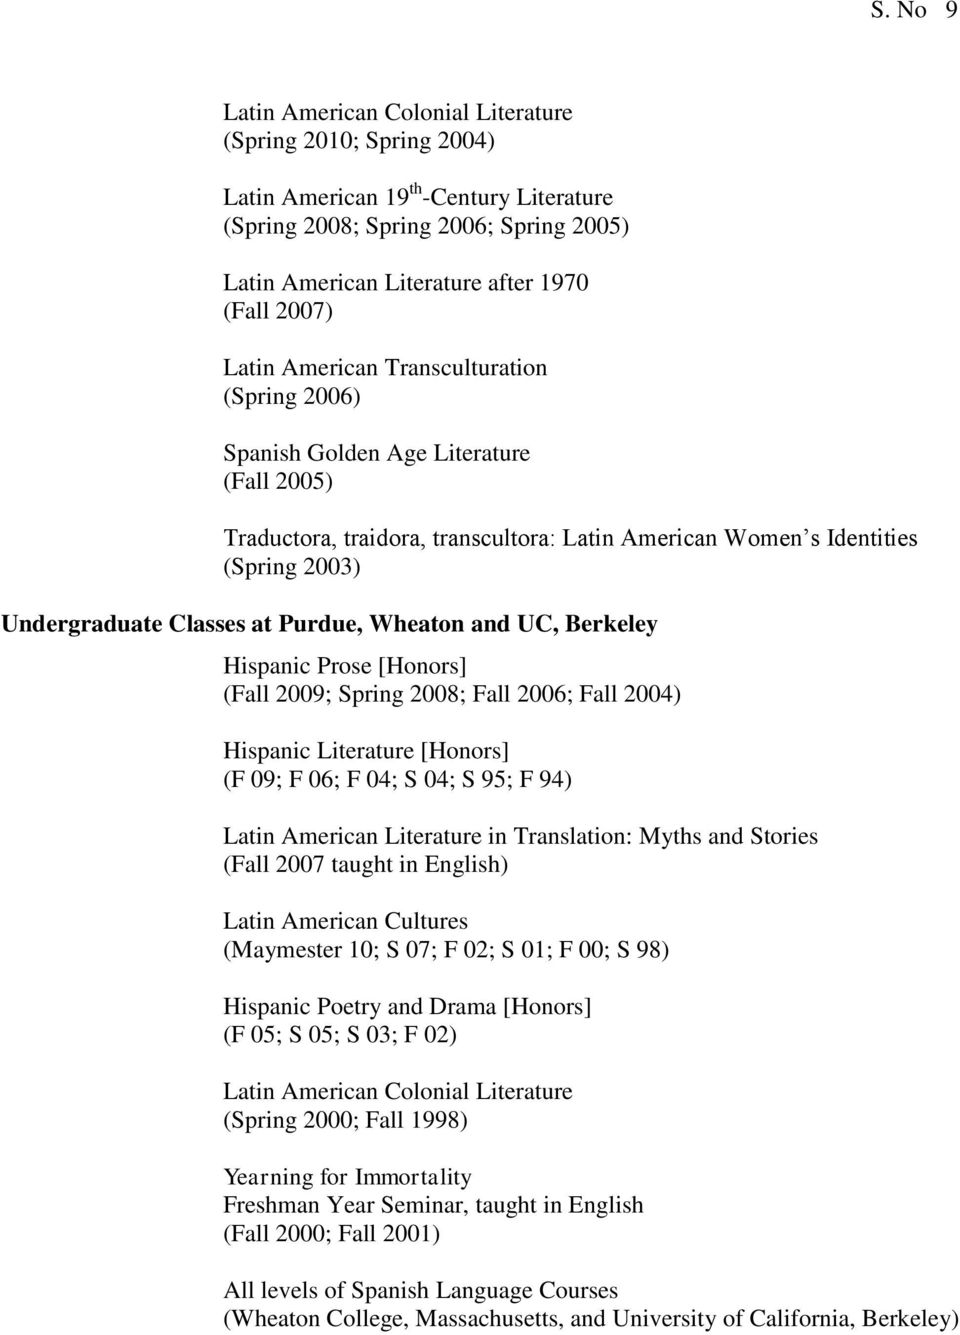 Purdue, Wheaton and UC, Berkeley Hispanic Prose [Honors] (Fall 2009; Spring 2008; Fall 2006; Fall 2004) Hispanic Literature [Honors] (F 09; F 06; F 04; S 04; S 95; F 94) Latin American Literature in